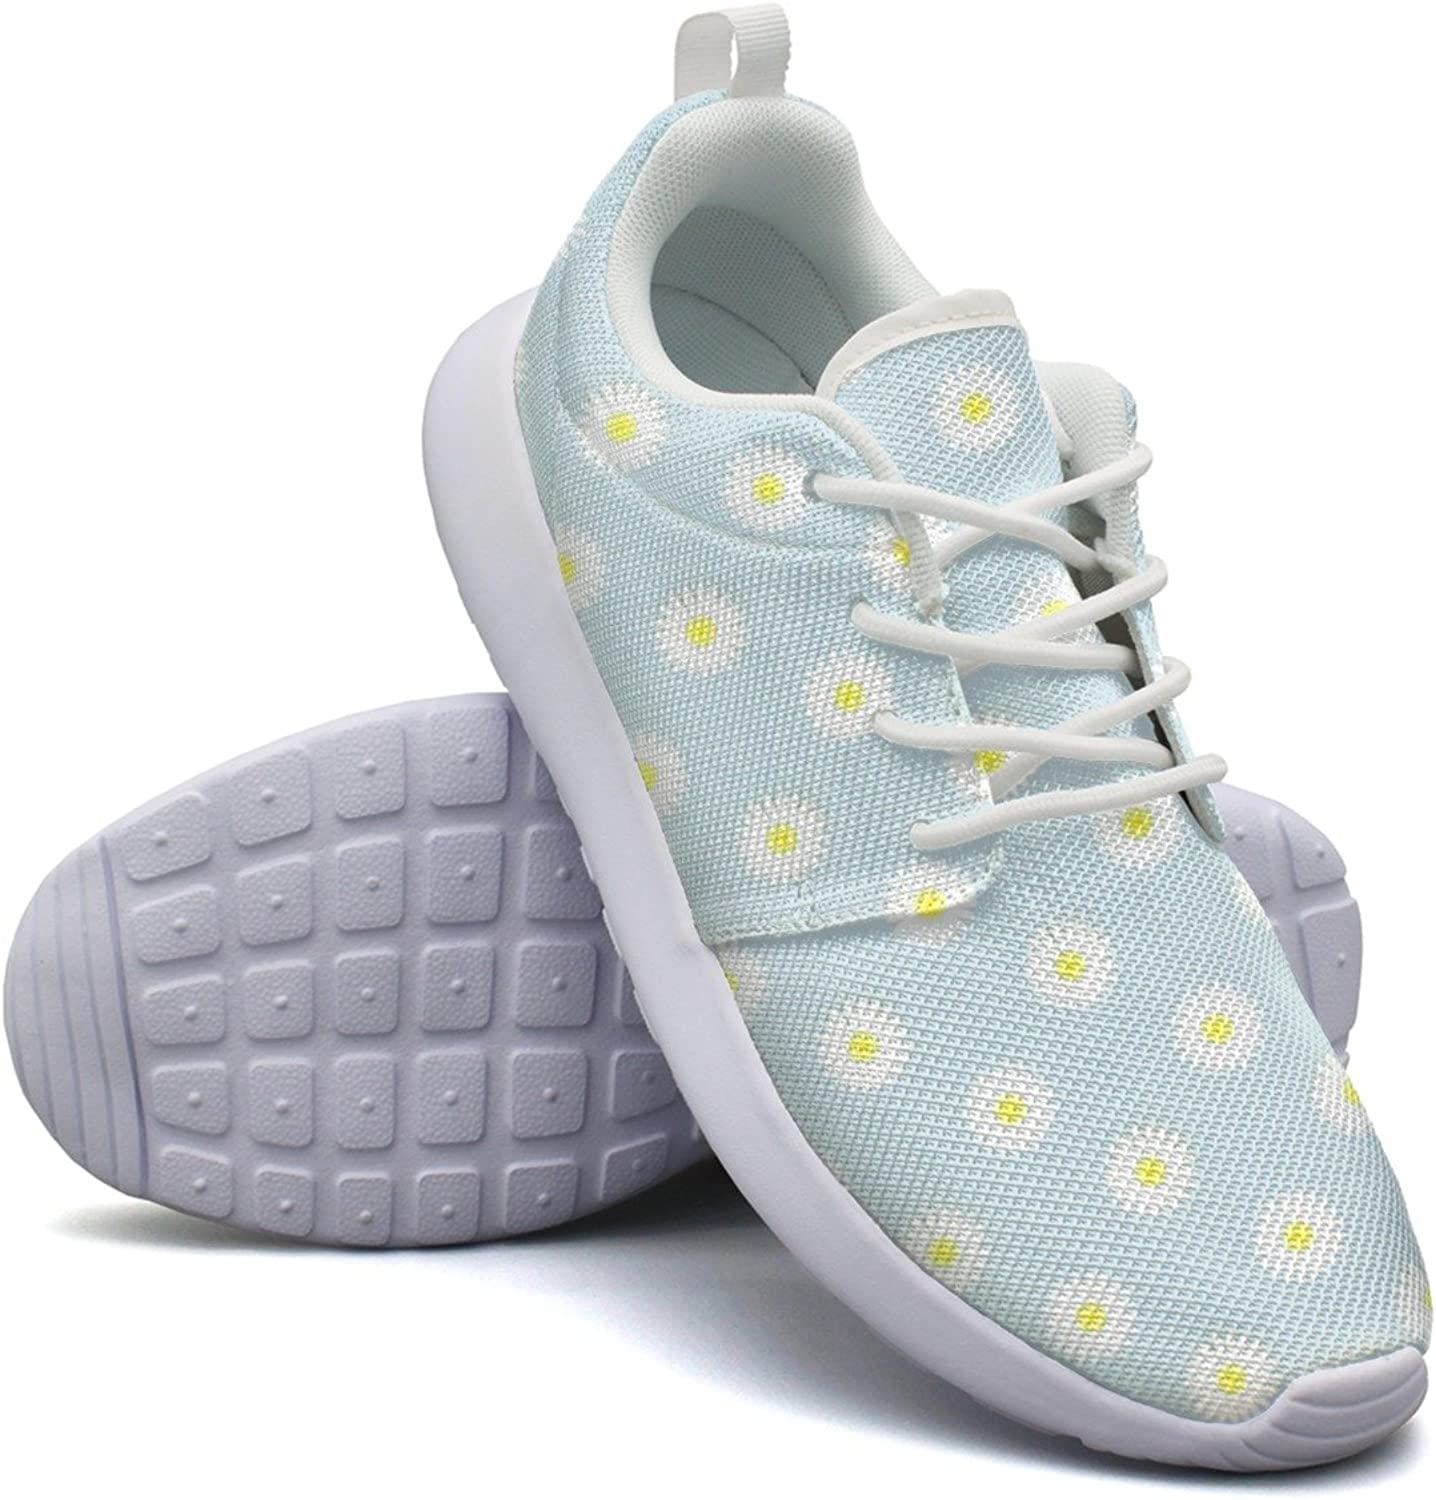 Net Daisy In The Sunshine Womens Cool Running shoes